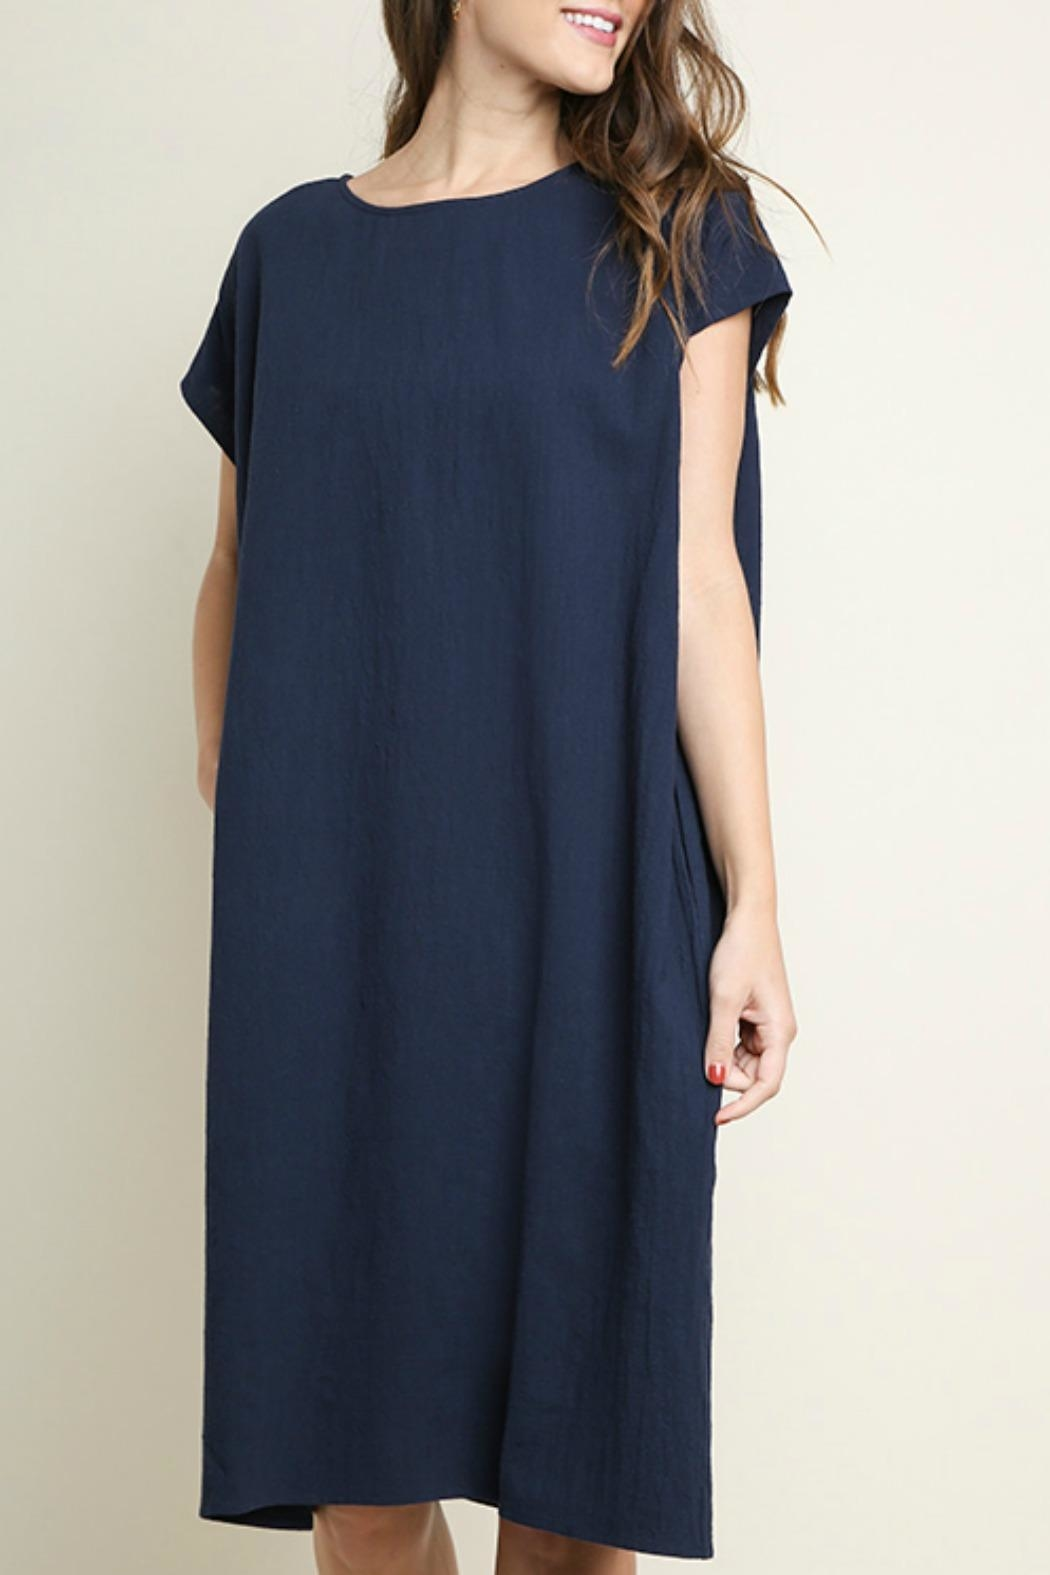 Umgee USA Cotton Pocket Dress - Front Cropped Image